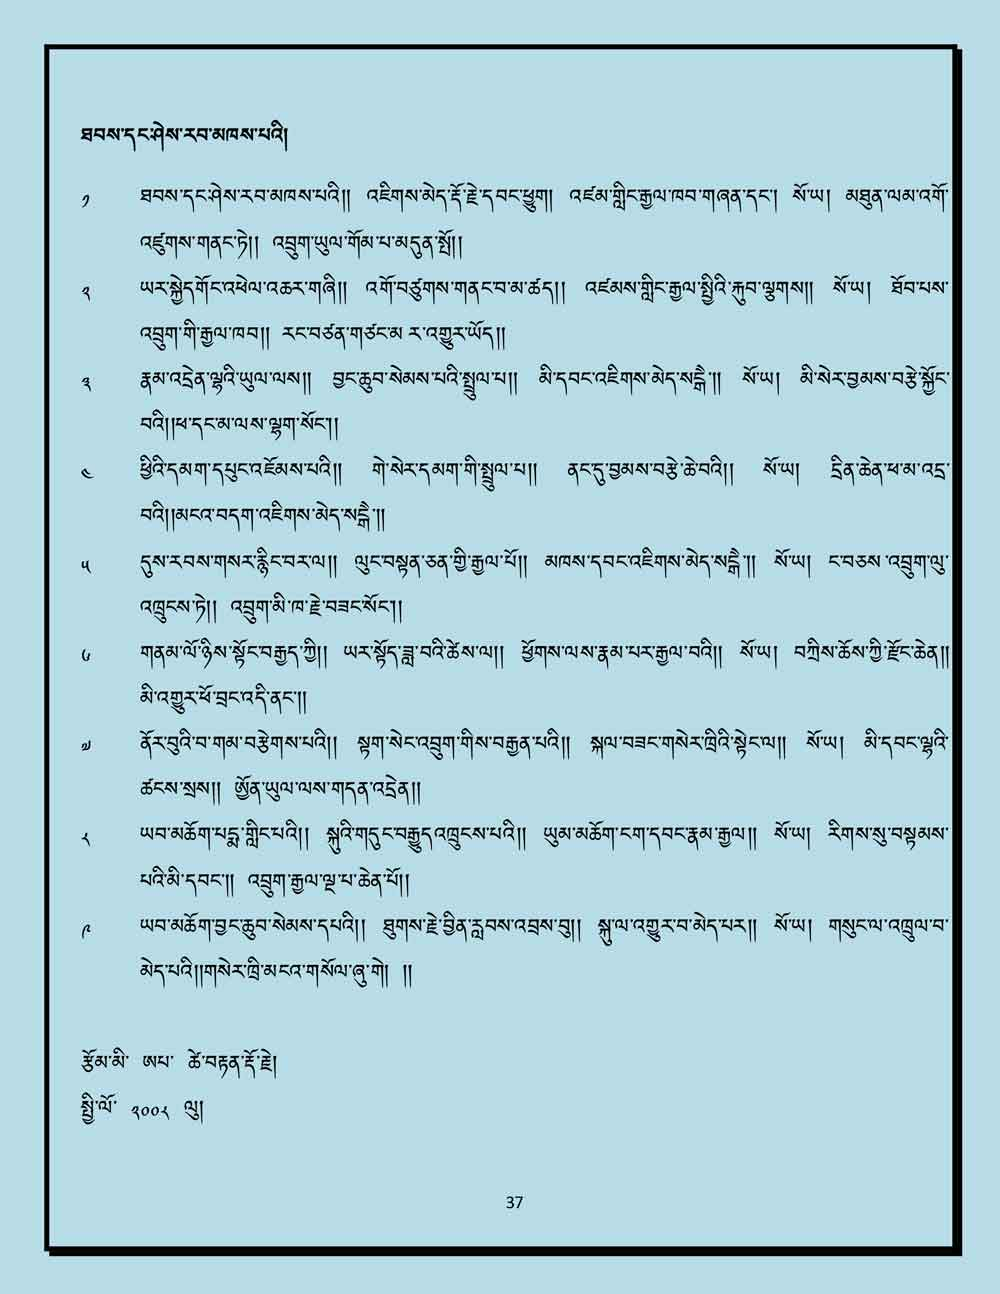 Ap-Tseten-Lyrics-37.jpg